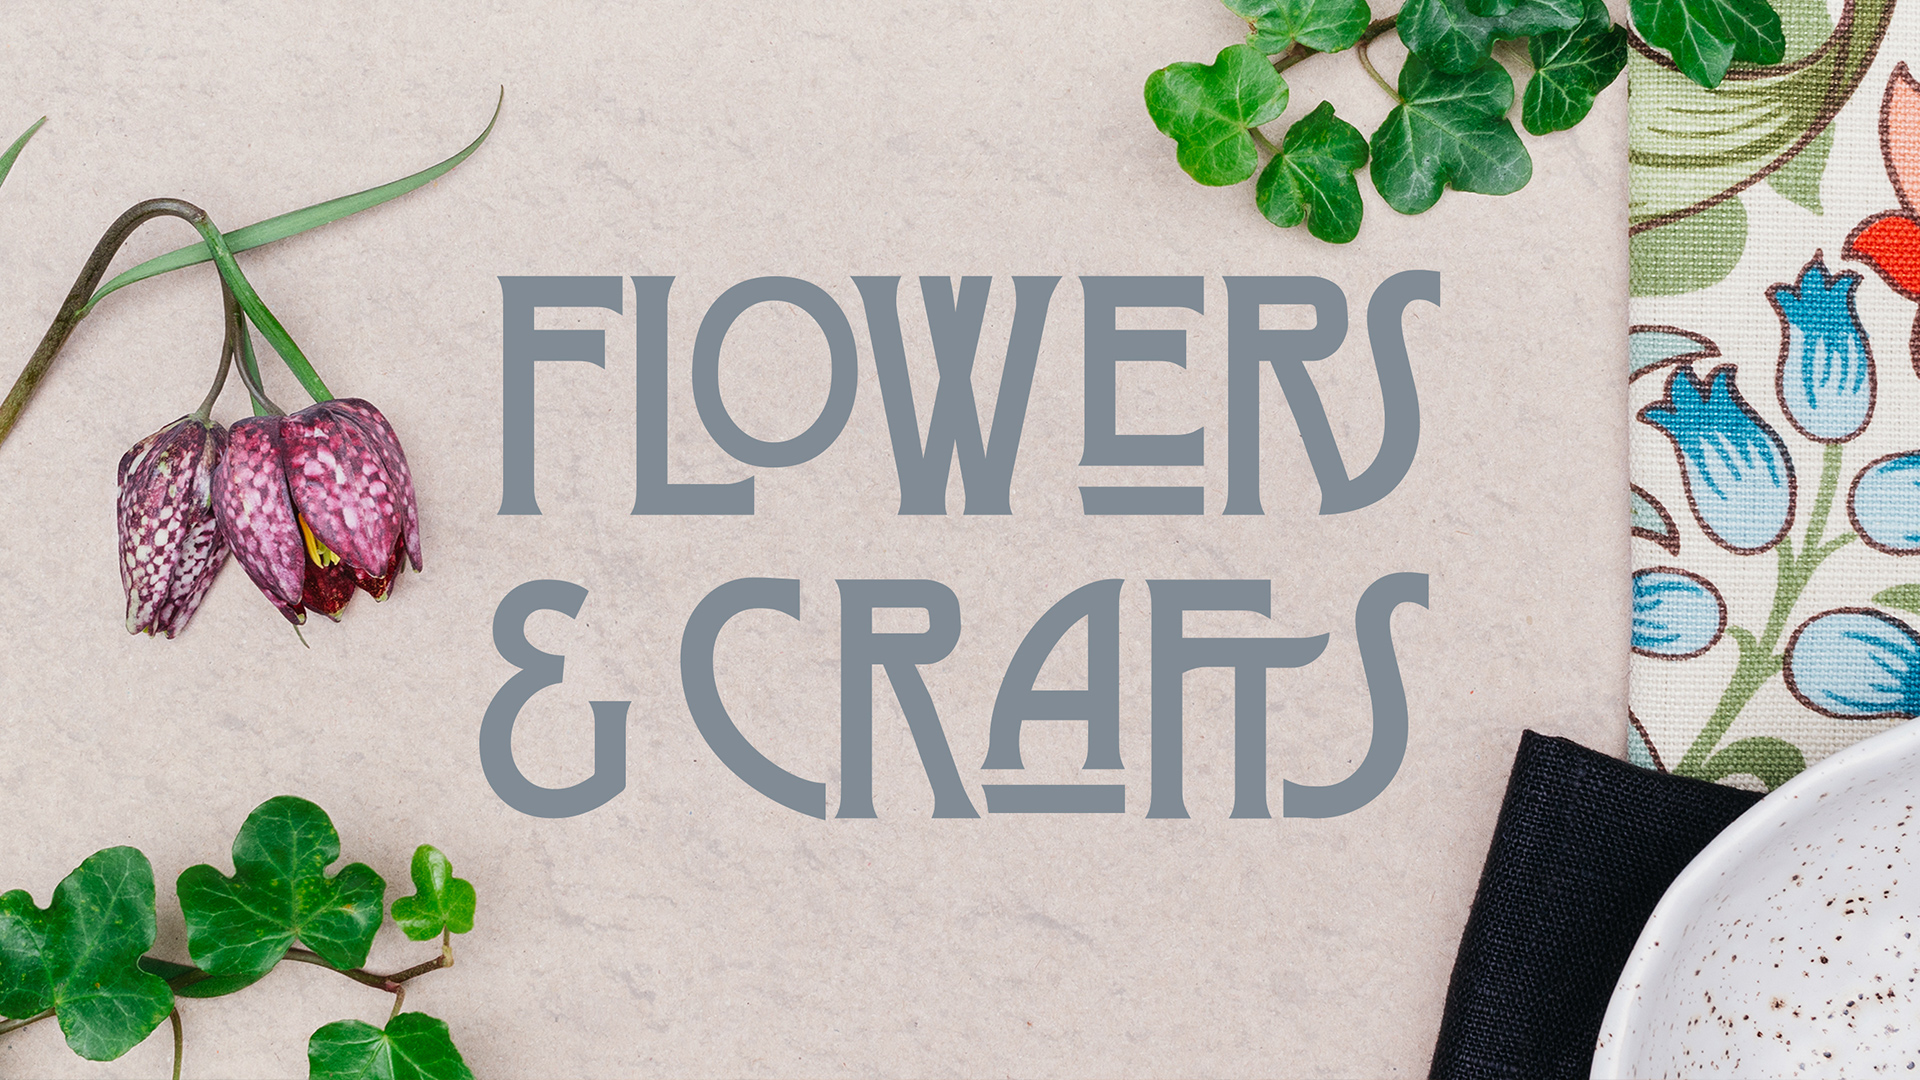 Garden Trends I Flowers and Crafts.jpg